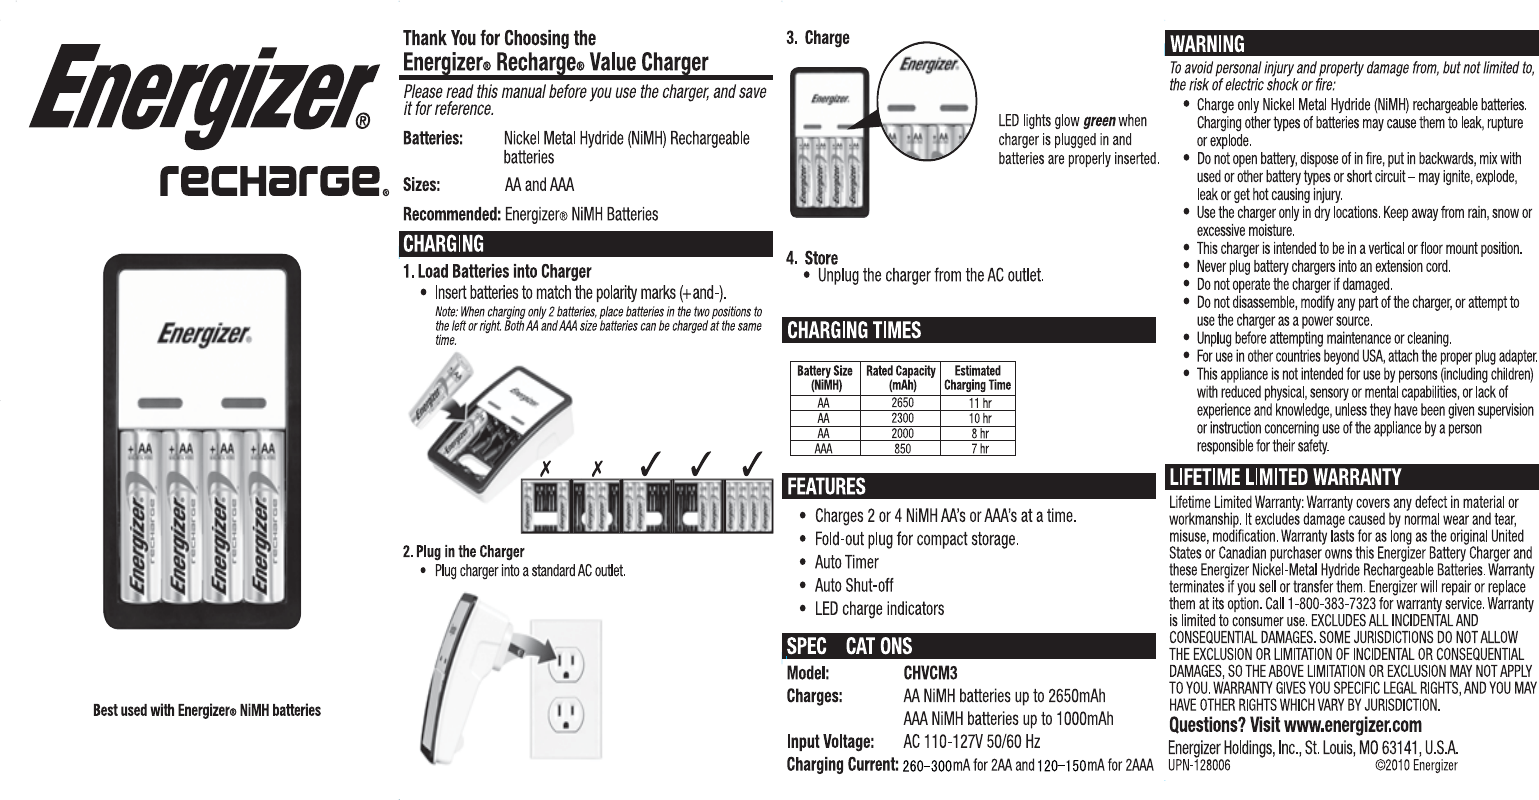 Energizer Battery Charger CHVCM3 manual